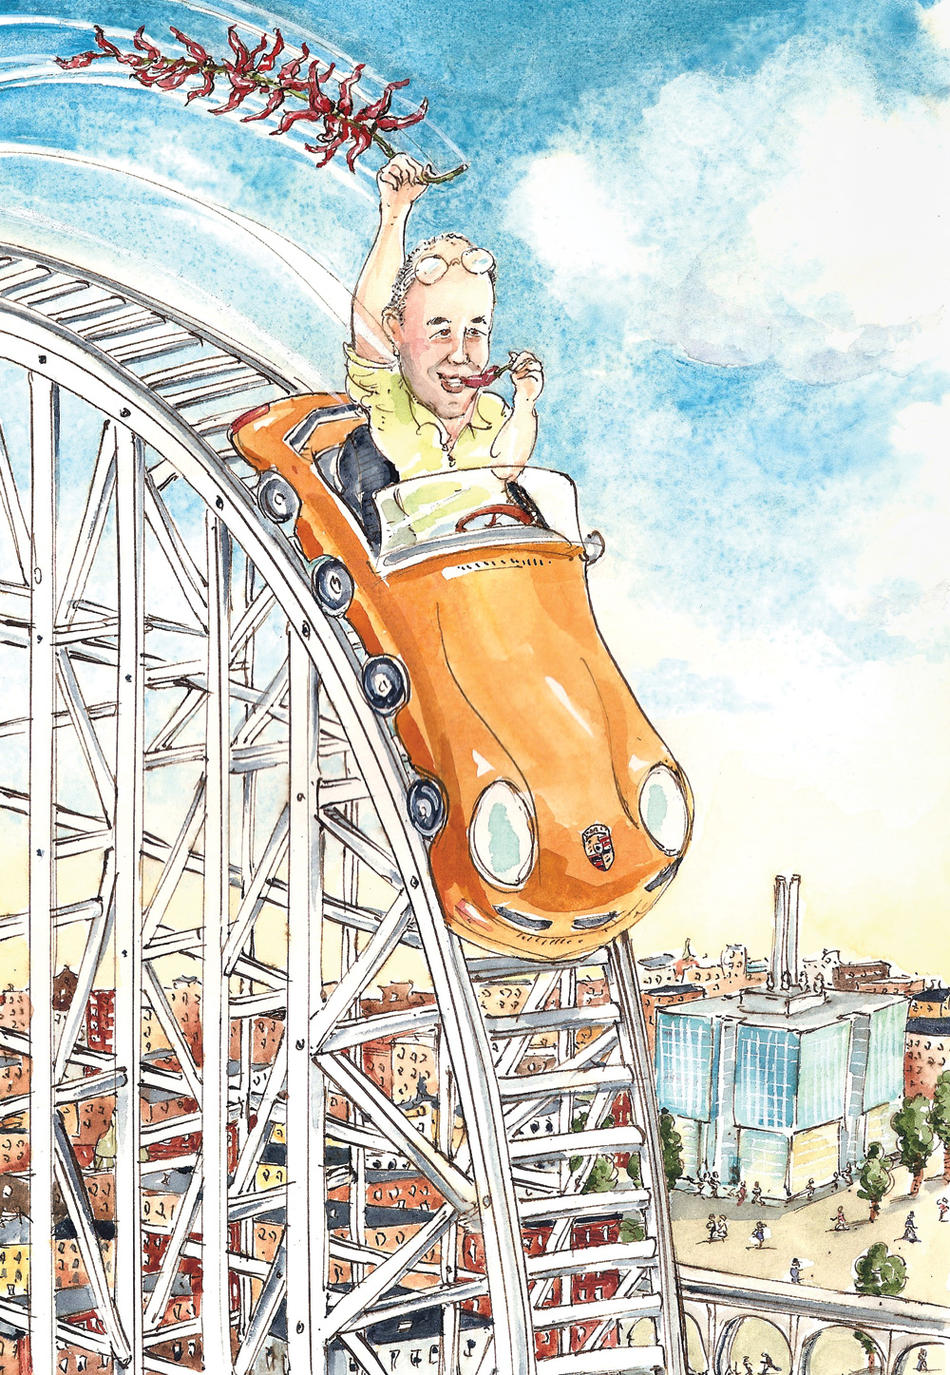 Illustration of Columbia scientist Charles Zuker on rollercoaster by Mark Steele